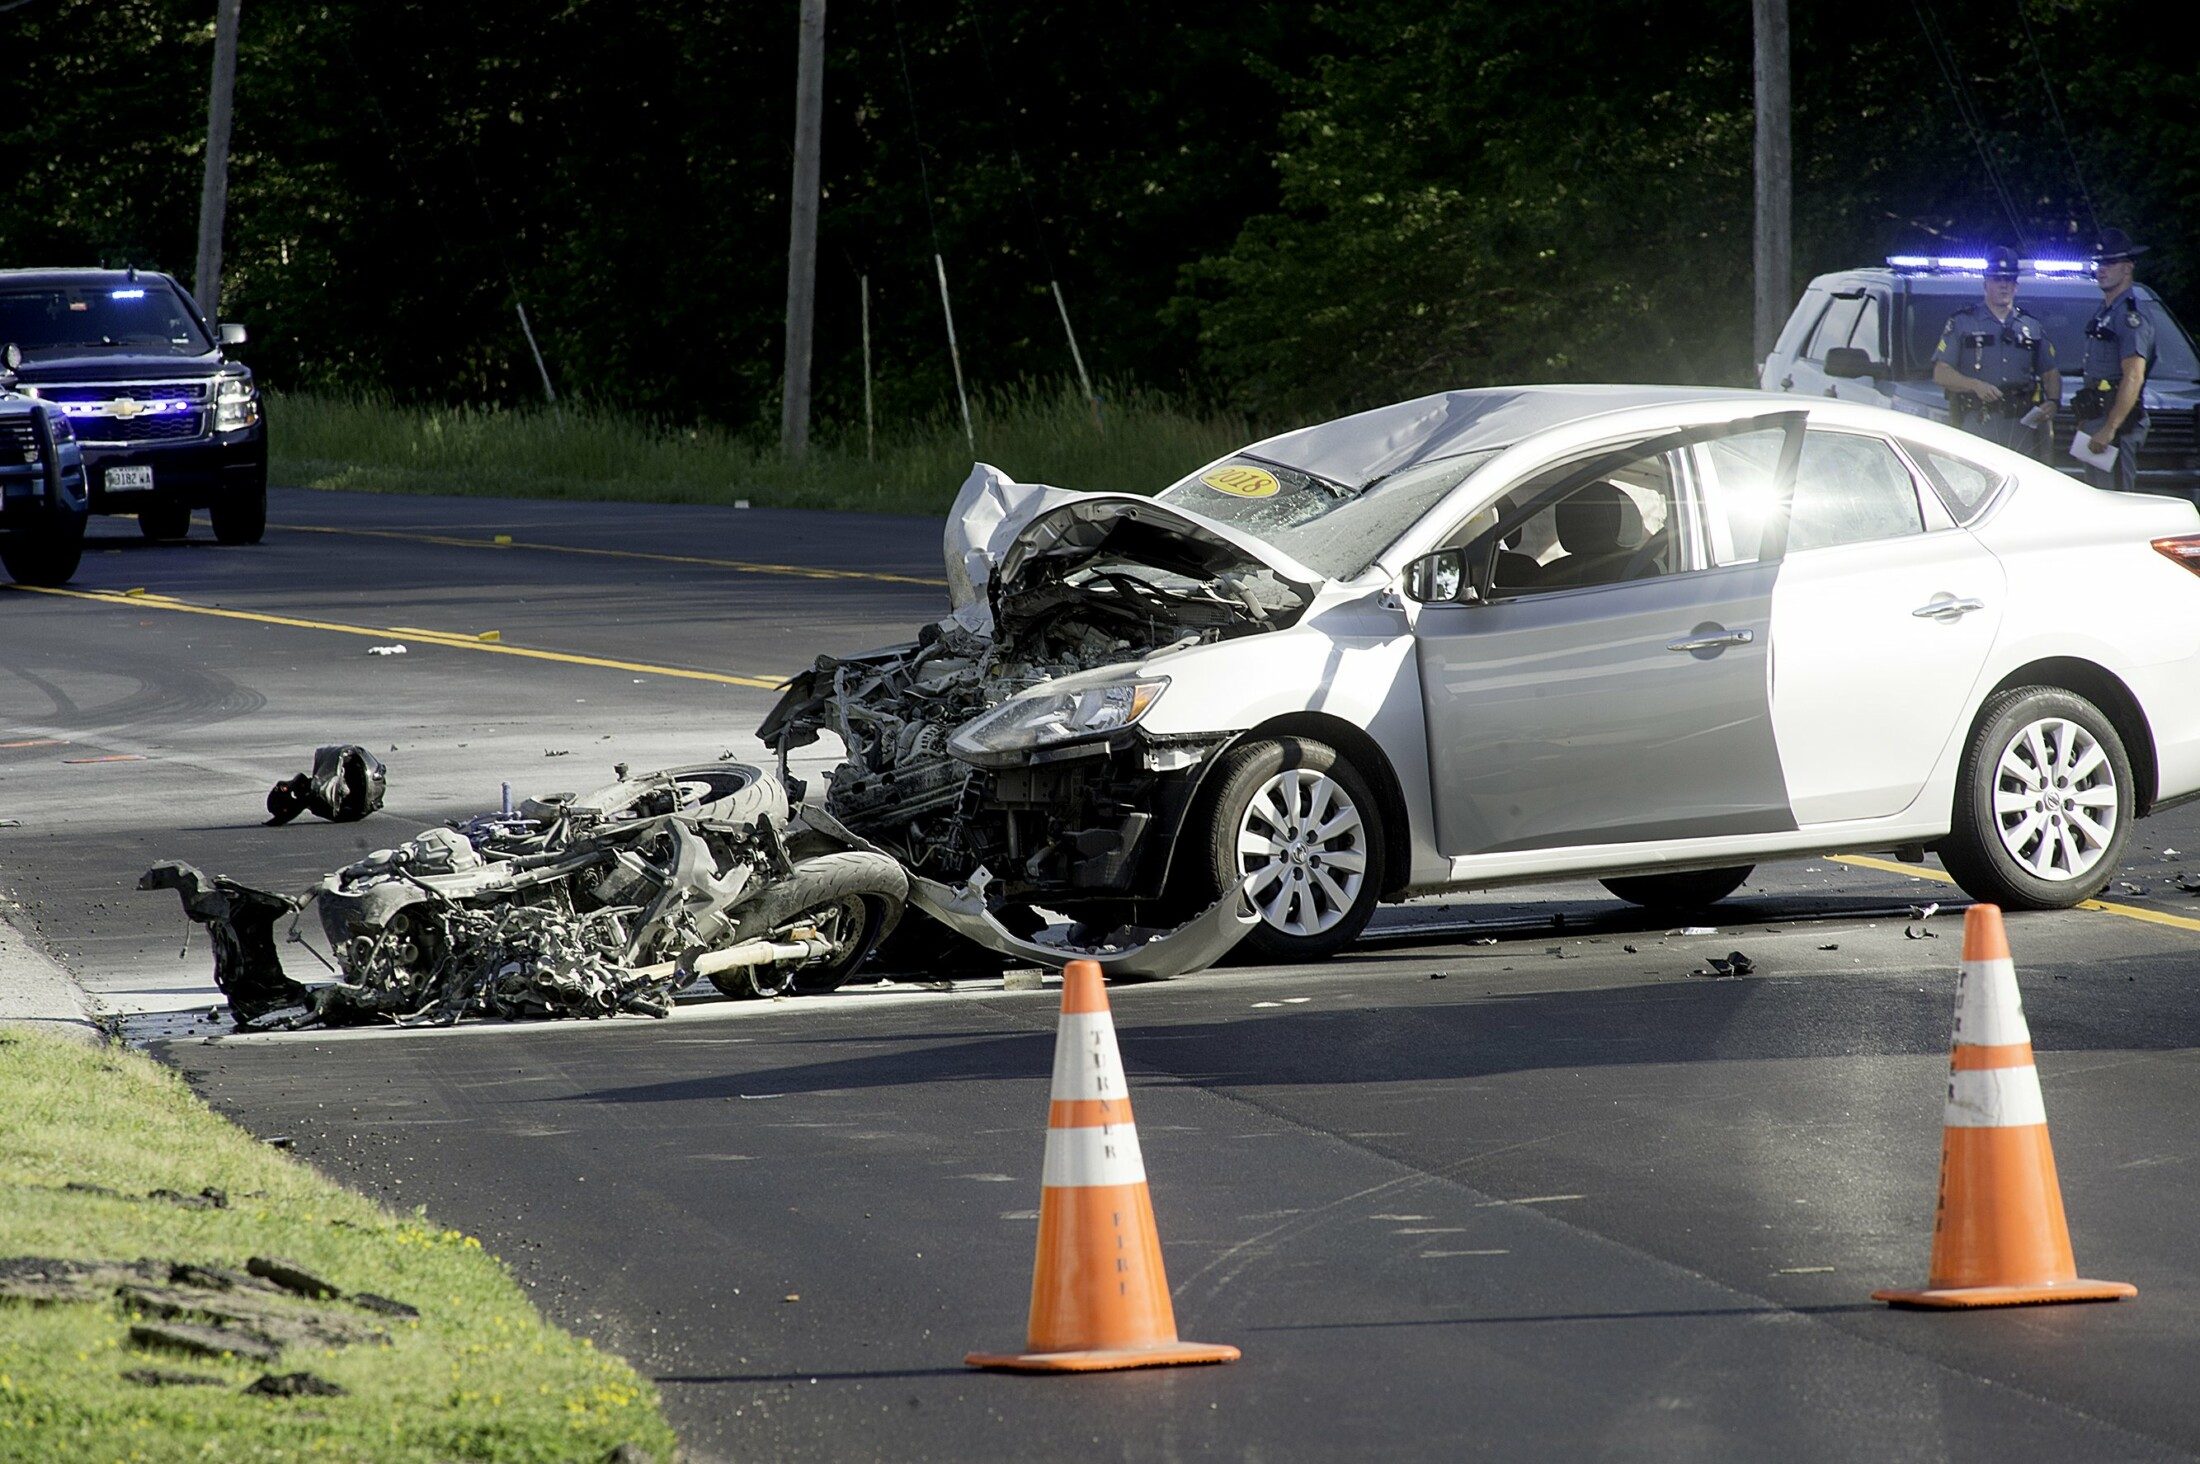 One person dead after car collides with motorcycles in